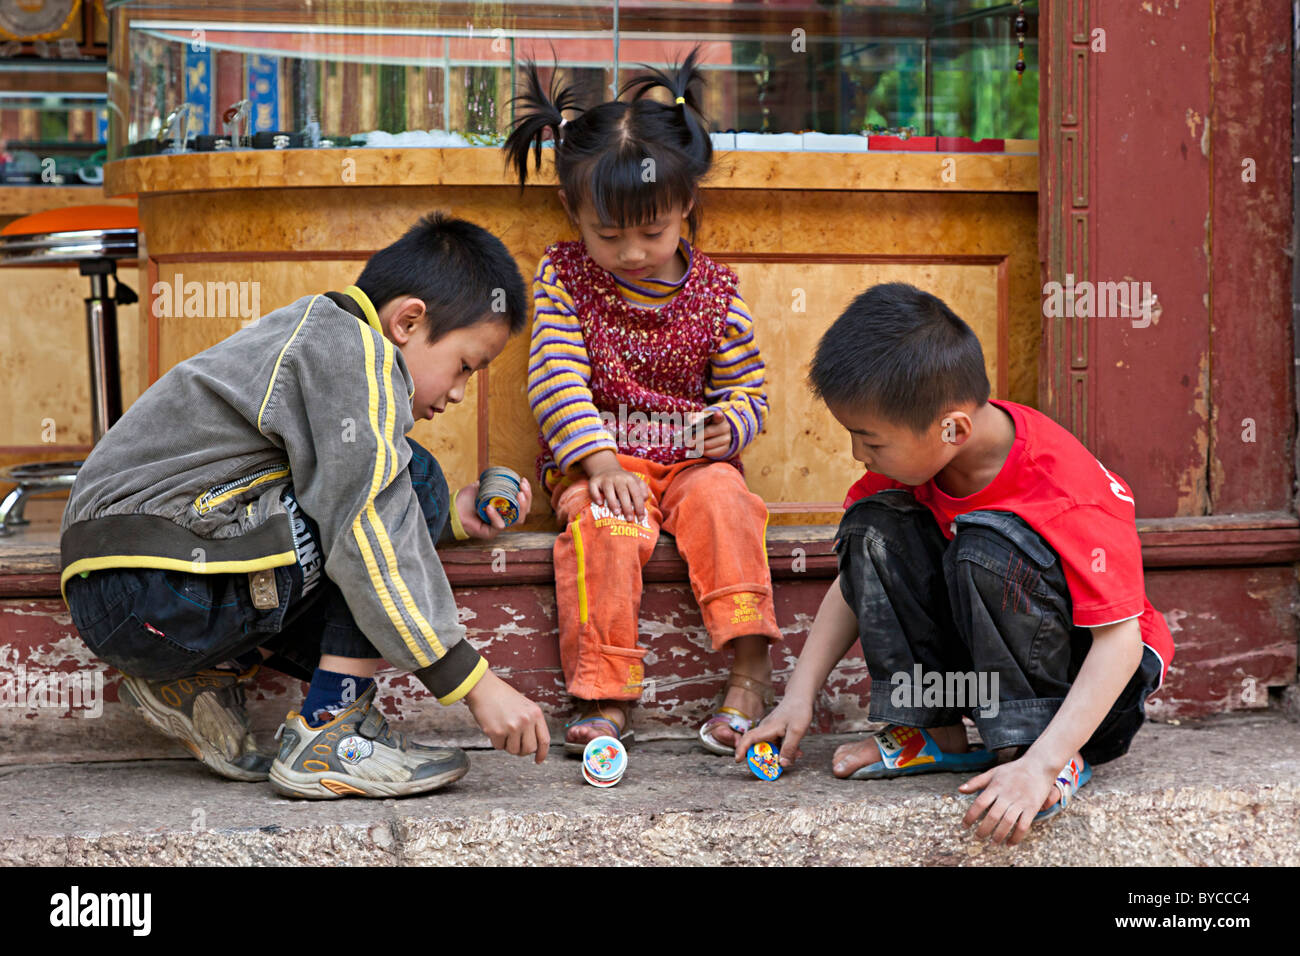 Young children playing game in the Old Market Square, Lijiang, Yunnan Province, China. JMH4751 - Stock Image